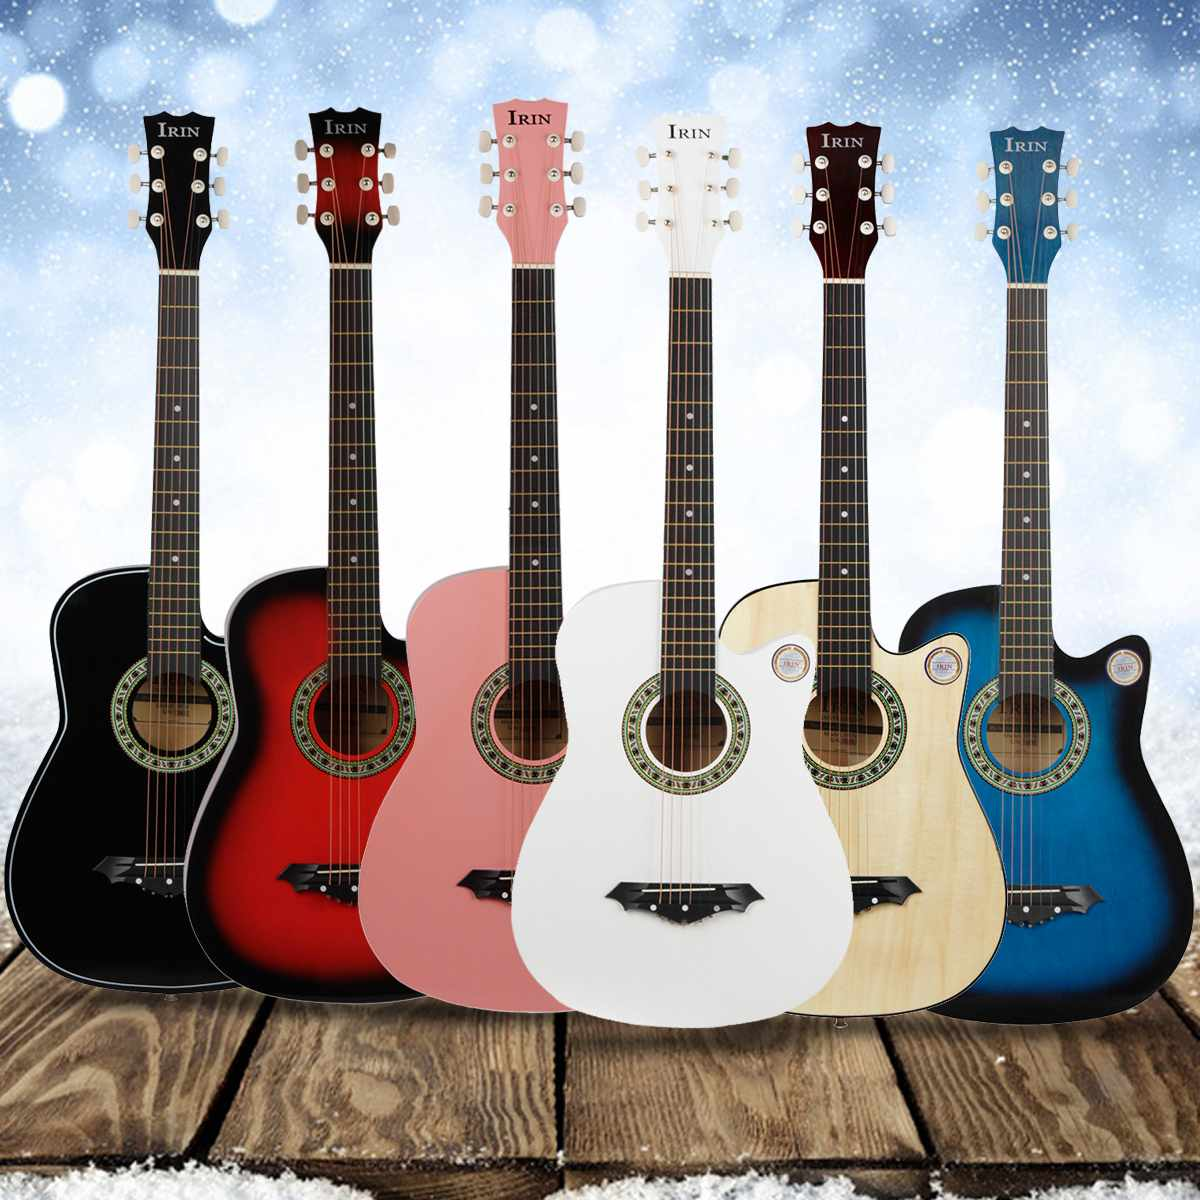 irin 38 inch guitar acoustic beginners started practicing guitar 4 strings educational musical. Black Bedroom Furniture Sets. Home Design Ideas